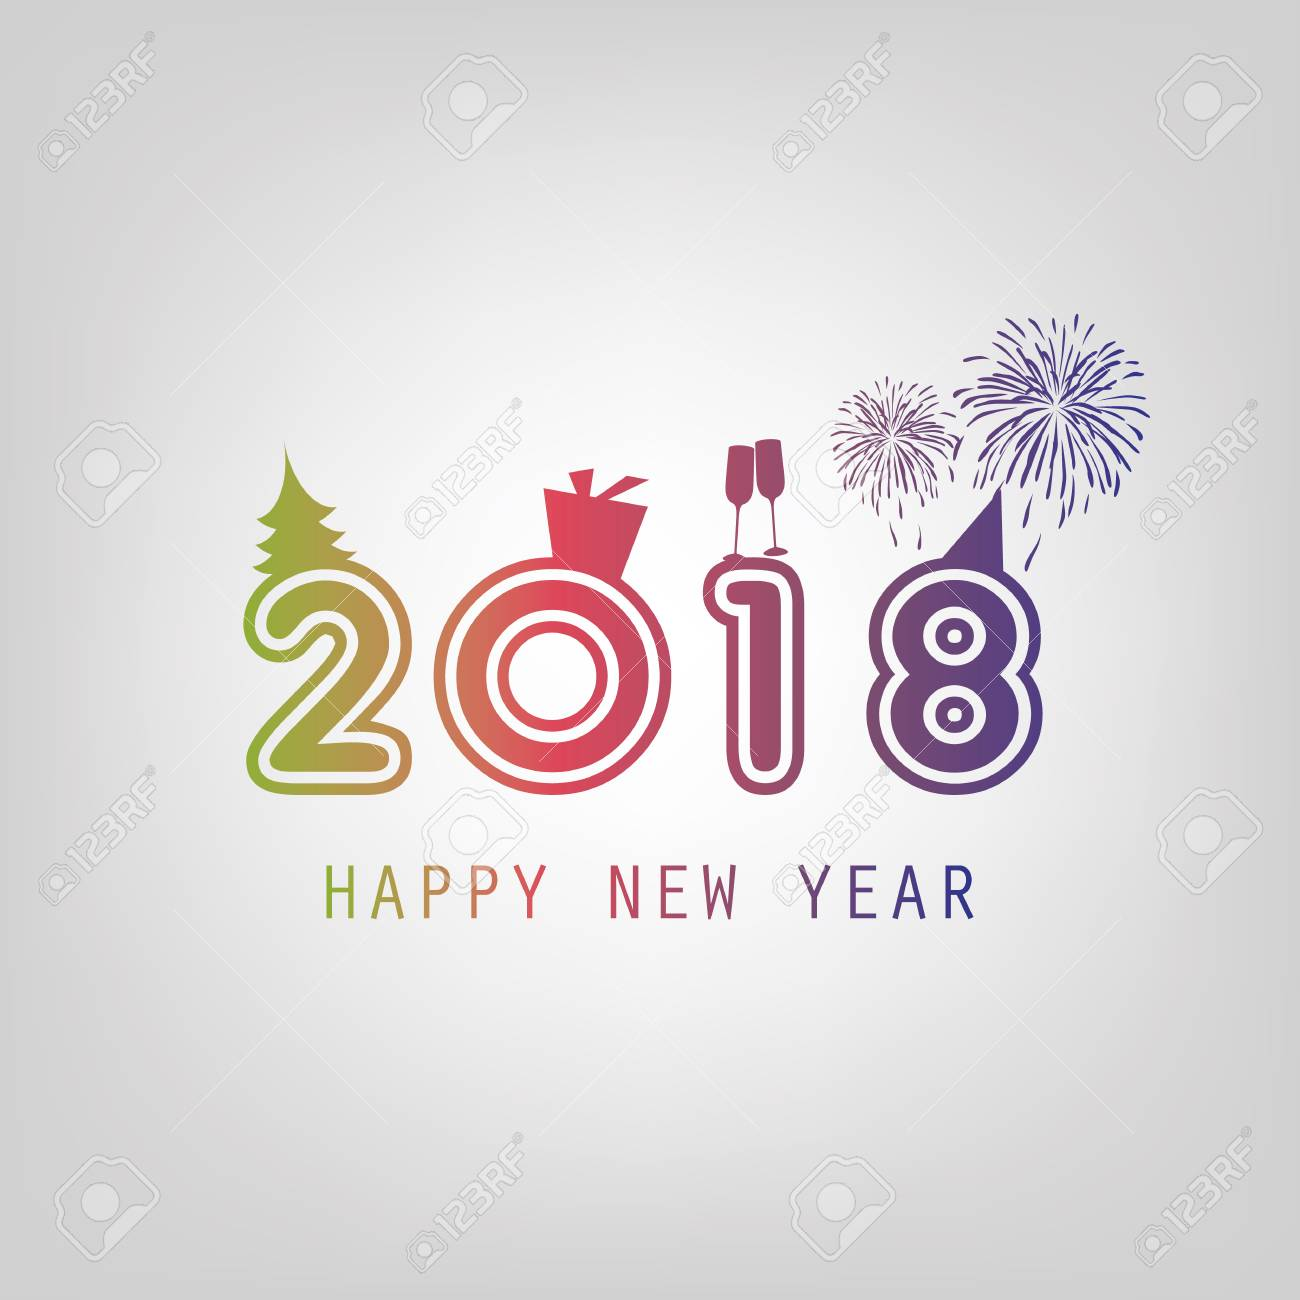 Best Wishes - New Year Card Background Template - 2018 Royalty Free ...